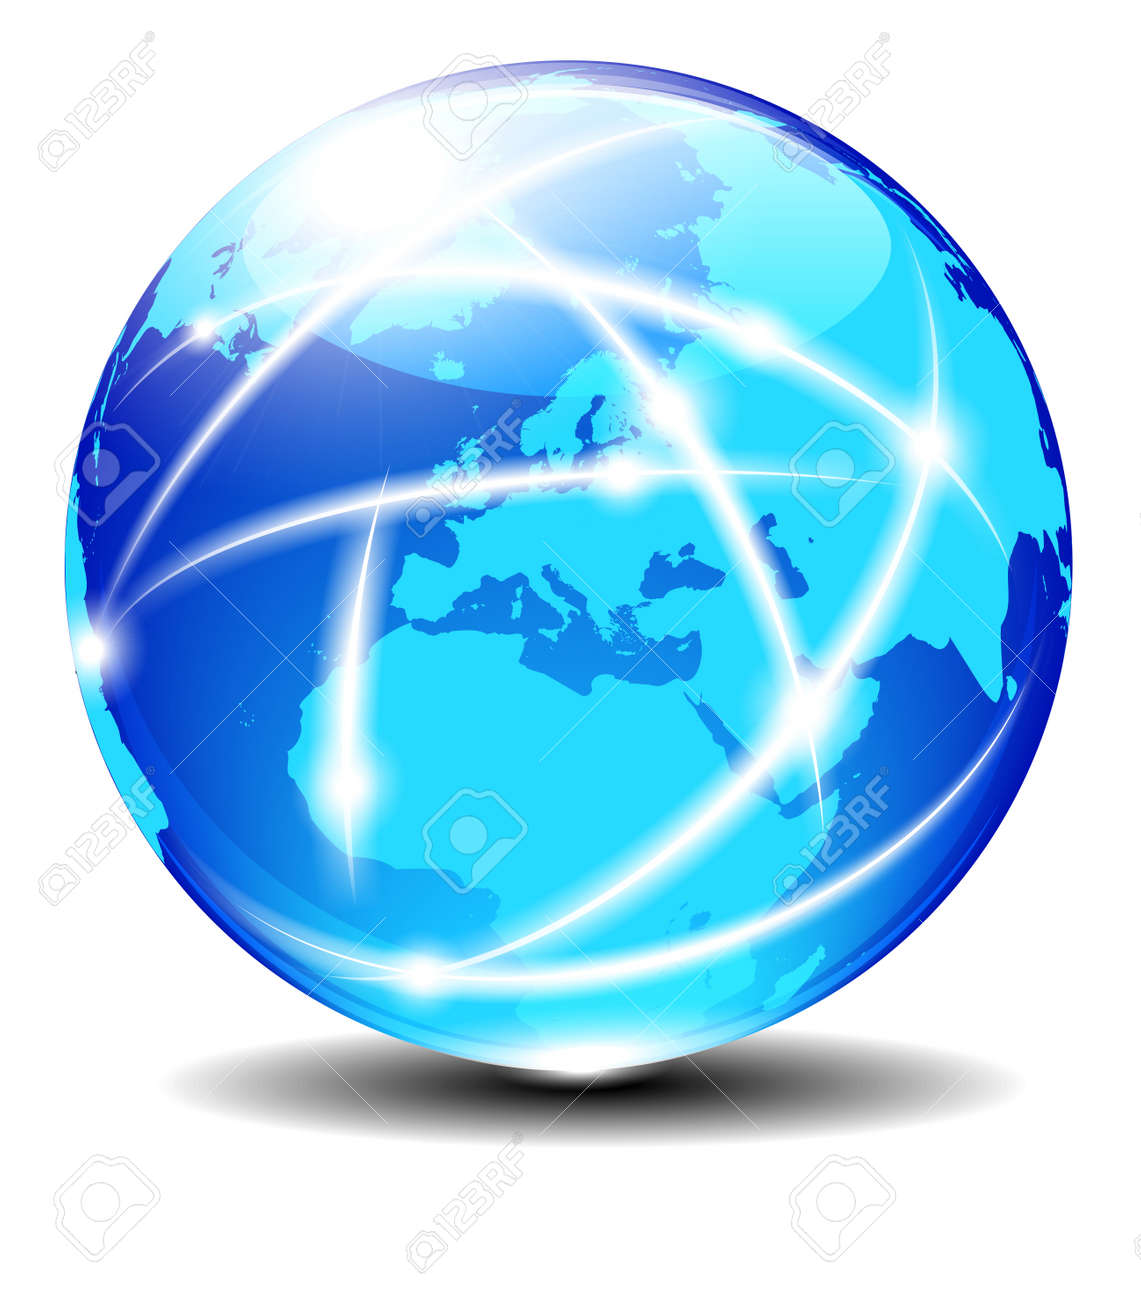 Europe Global Communication Planet with light lines Stock Vector - 17690715